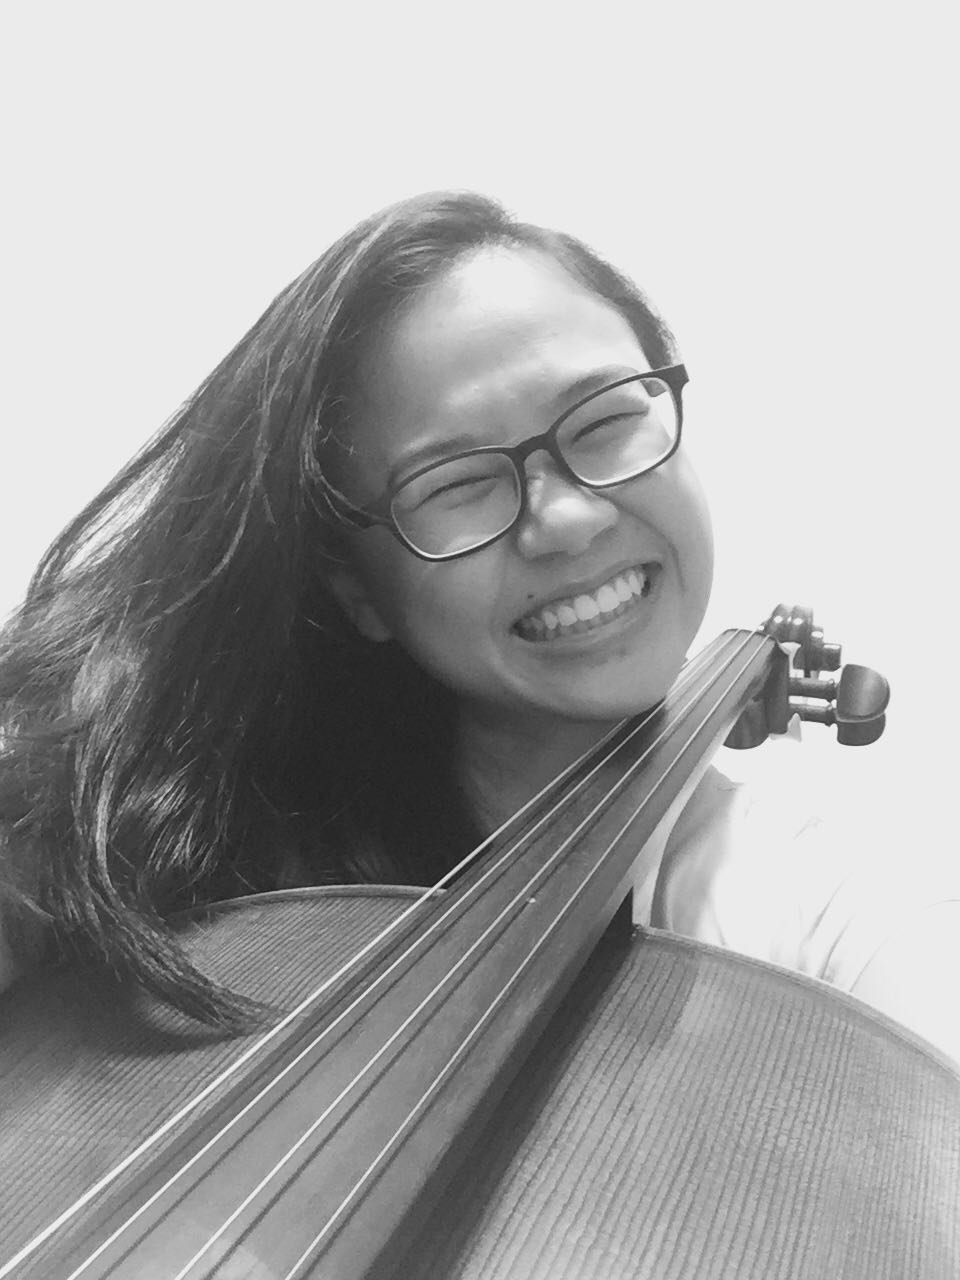 Wen Xuan, Cello student